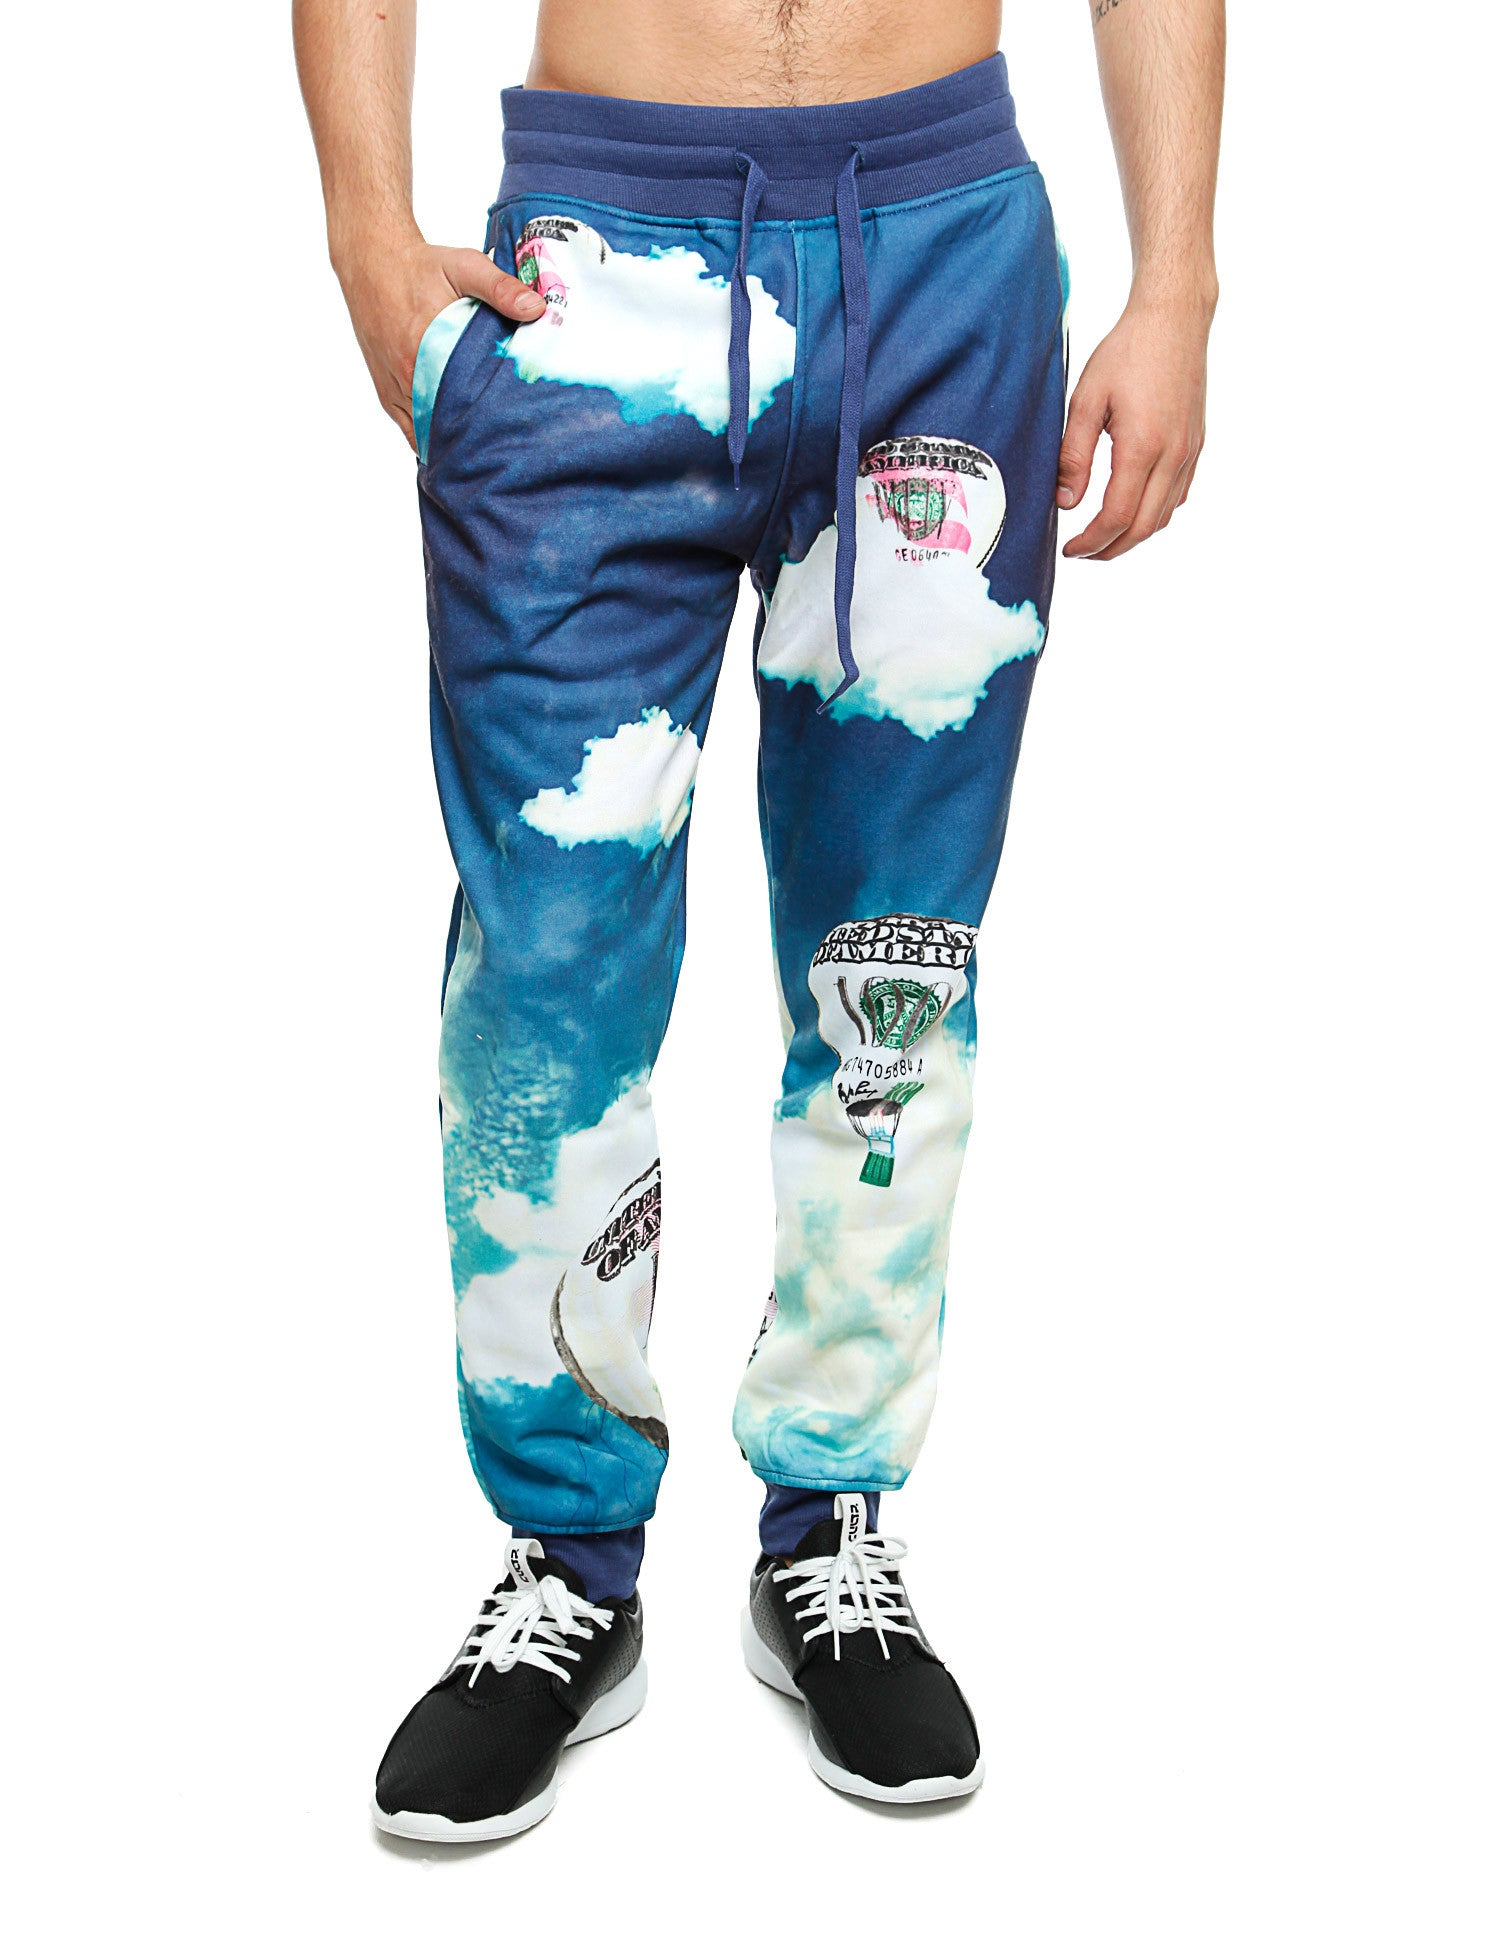 Imperious Money Bloom Sweatpant FP539 Blue